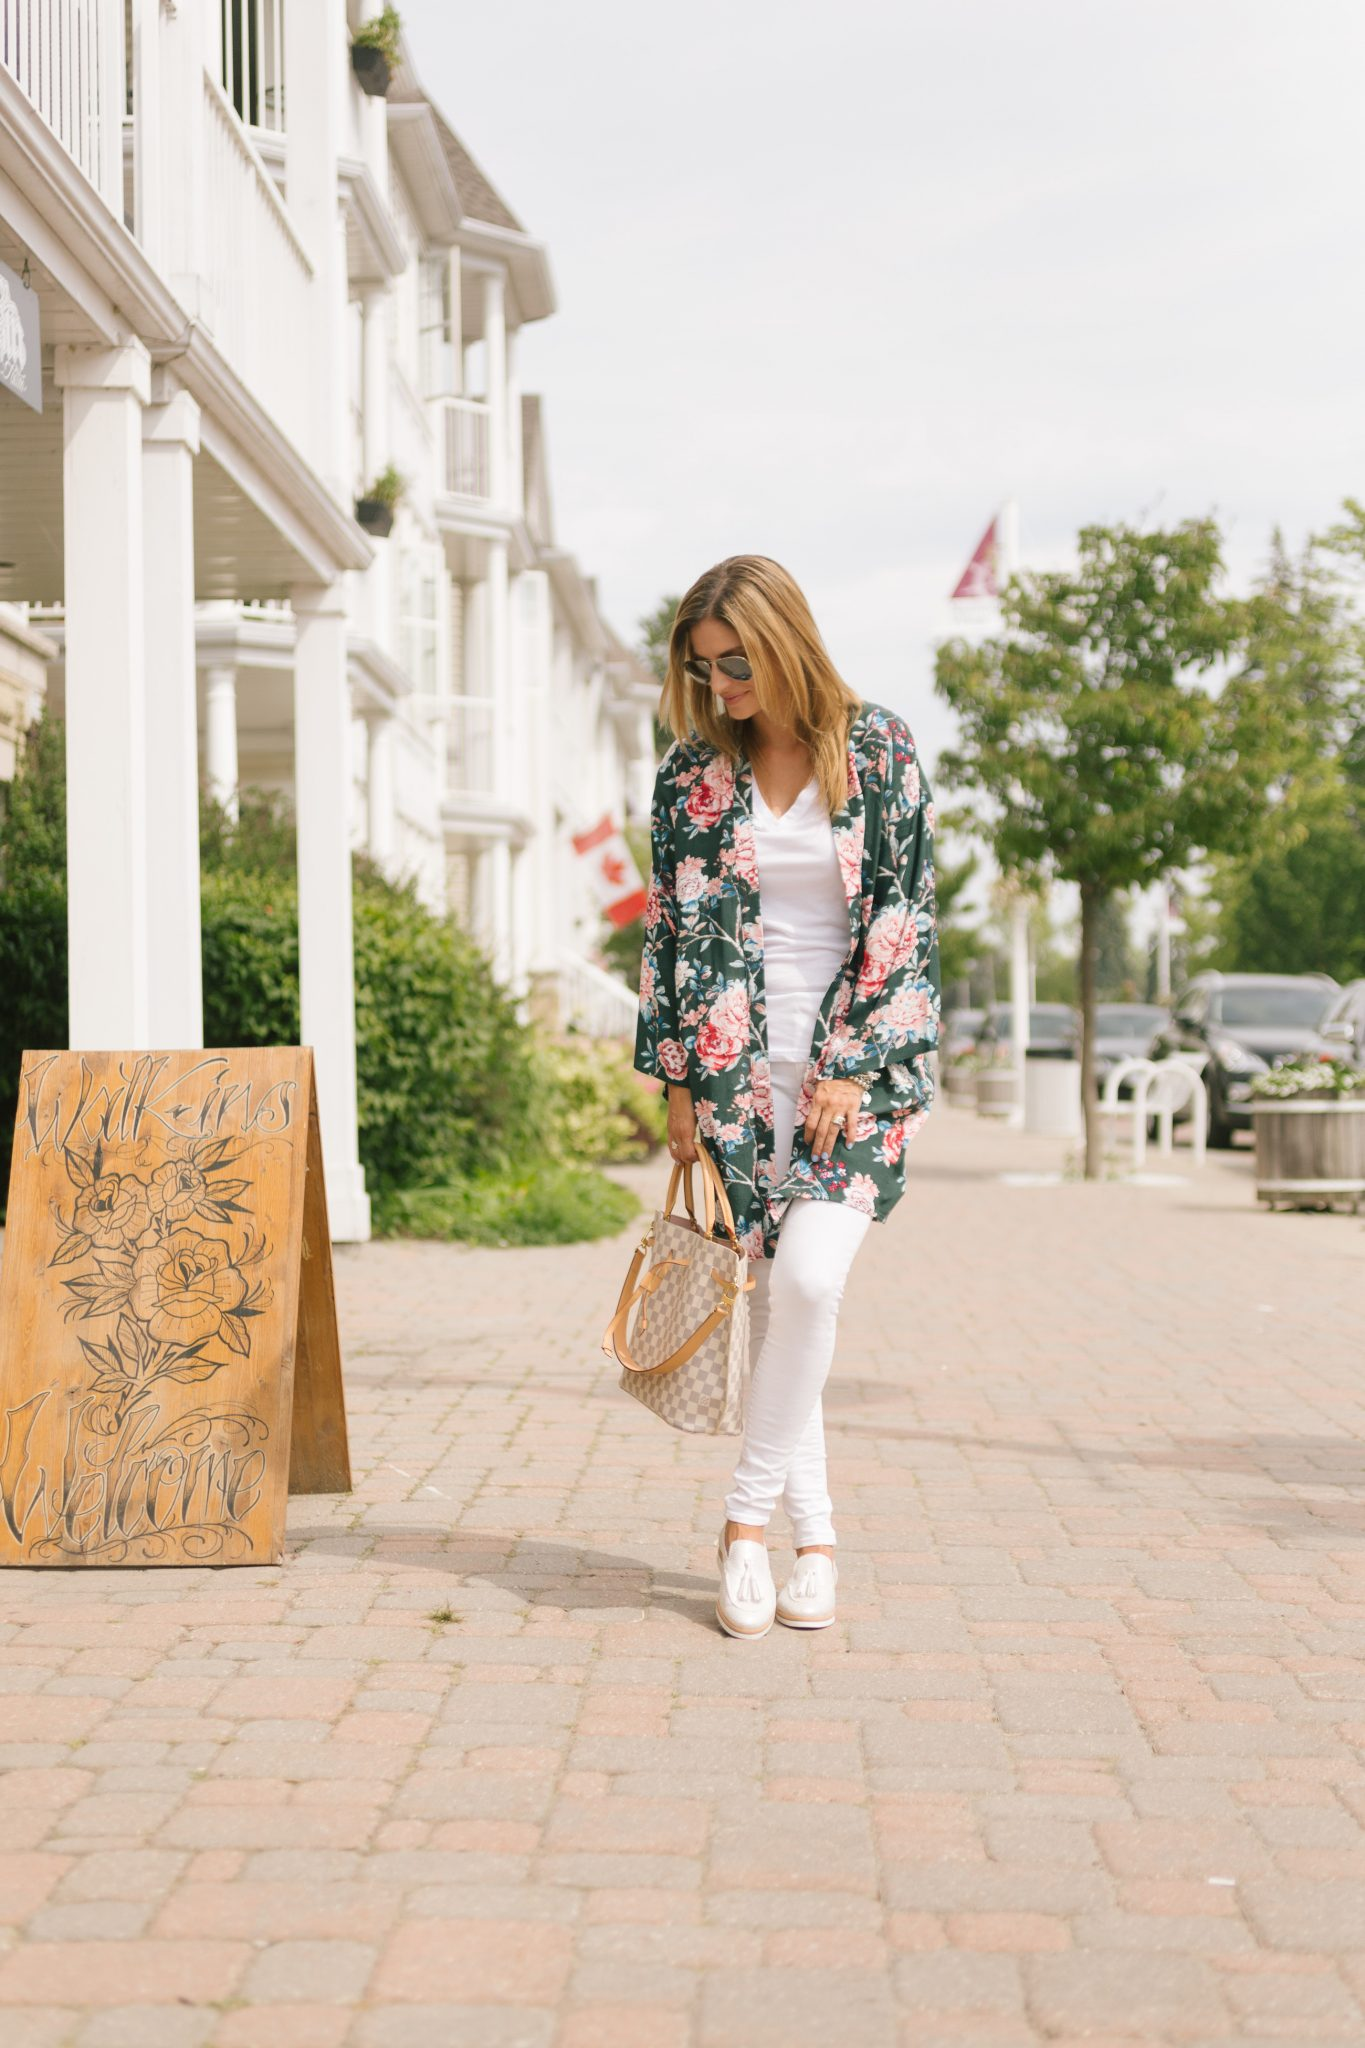 Geox Janalee shoe, green floral kimono from Forever 21, white jeans, Louis Vuitton Girolata bag